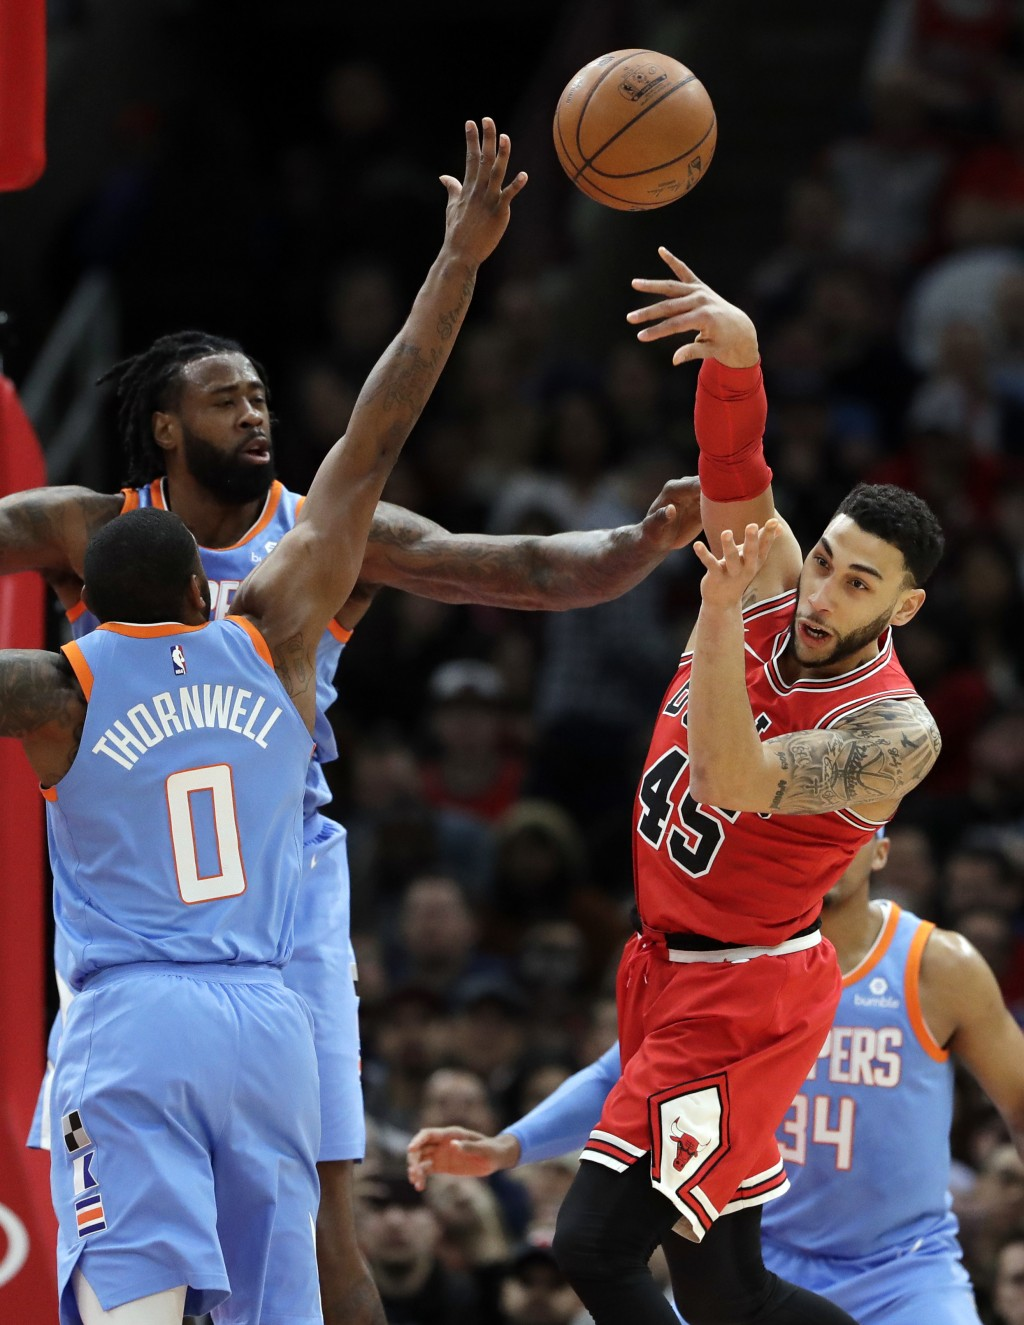 Chicago Bulls guard Denzel Valentine, right, passes against Los Angeles Clippers forward Sindarius Thornwell (0) and center DeAndre Jordan during the